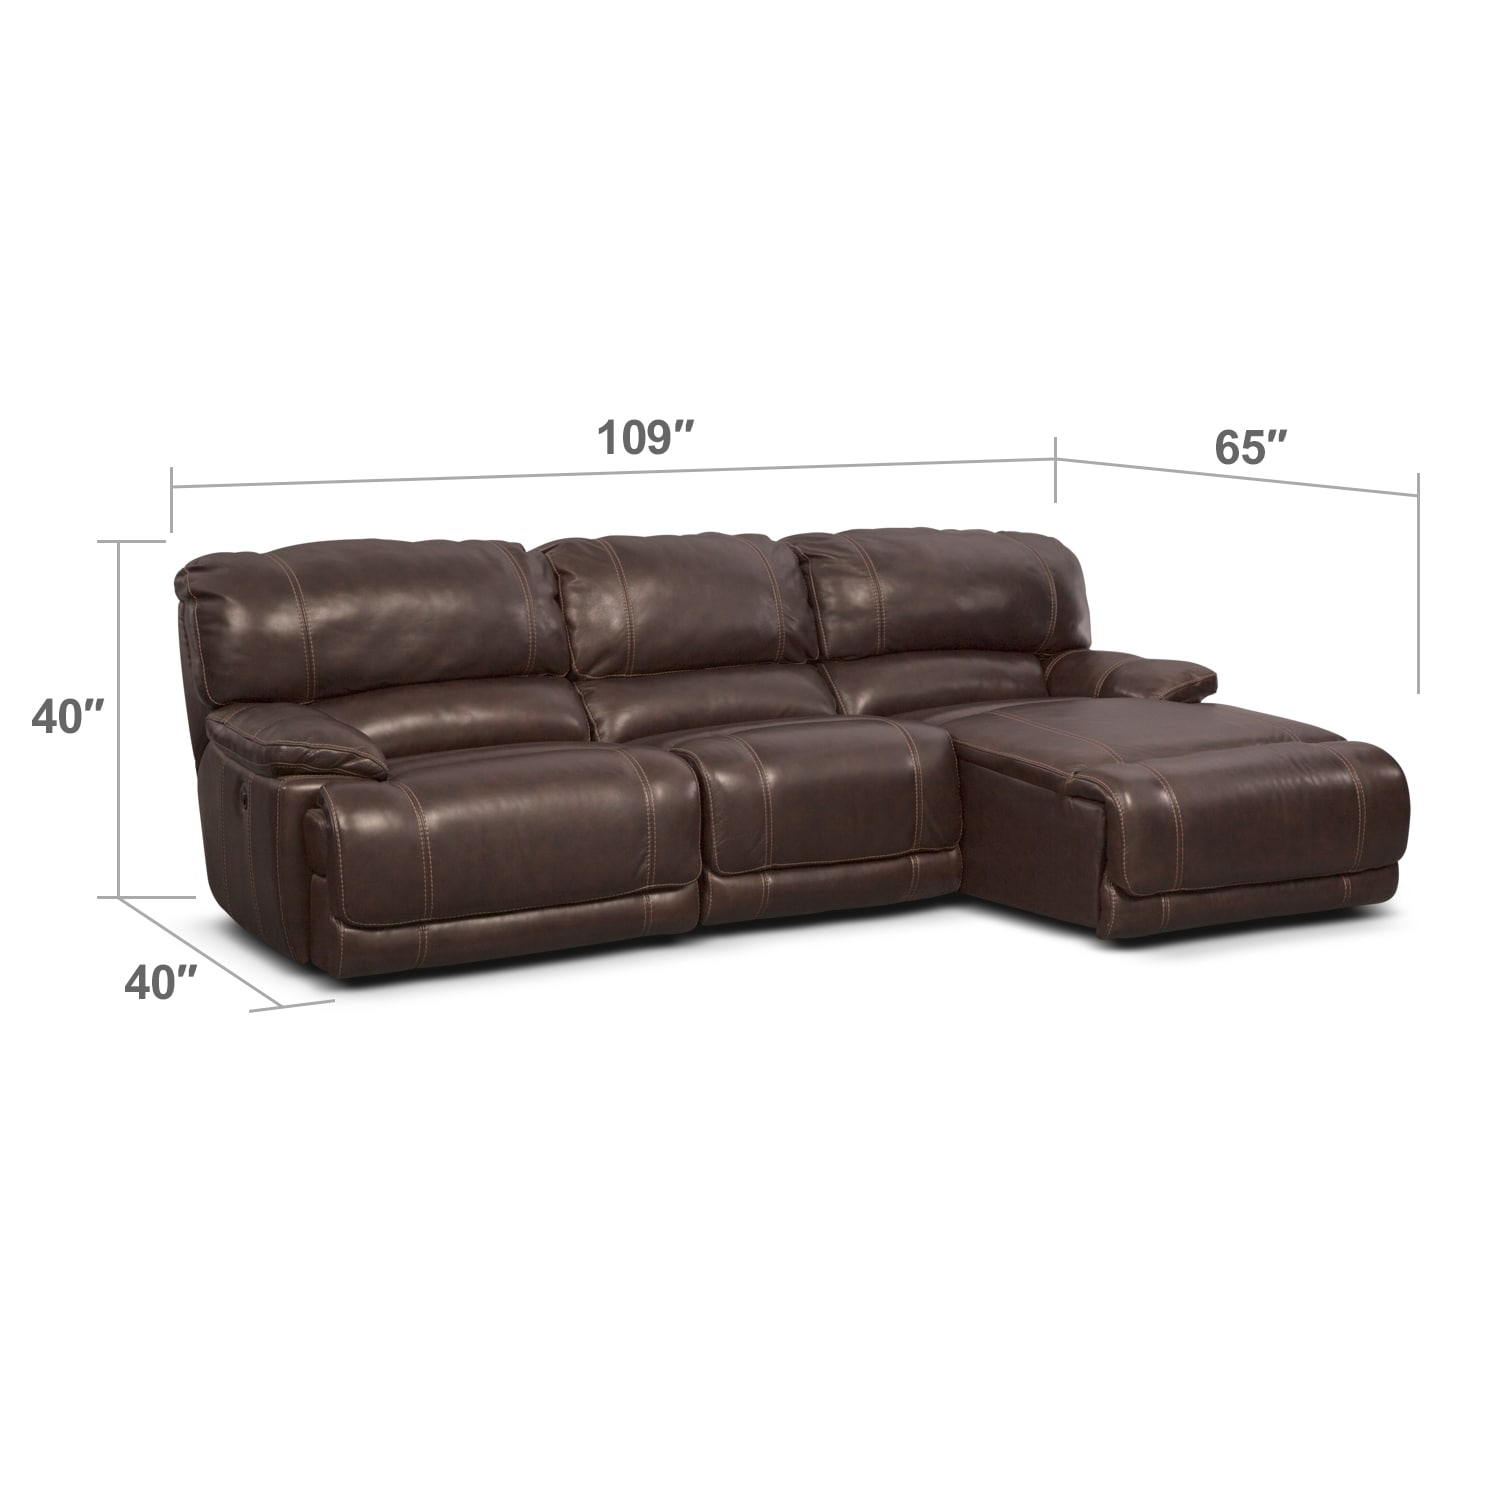 Living Room Furniture - Clinton Brown 3 Pc. Power Reclining Sectional